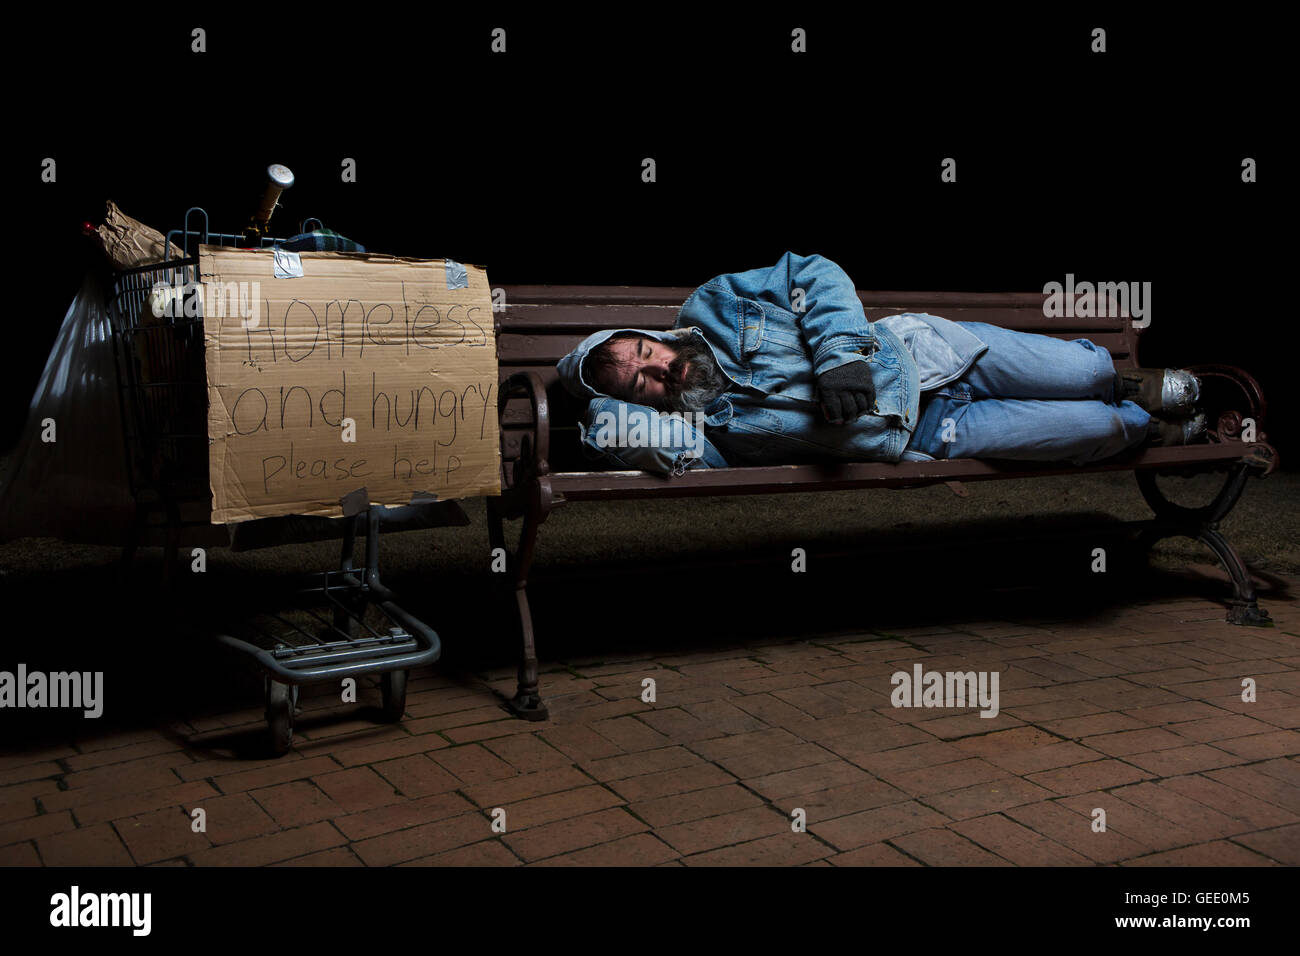 Homeless Man At Night Sleeping On A Park Bench With His Shopping